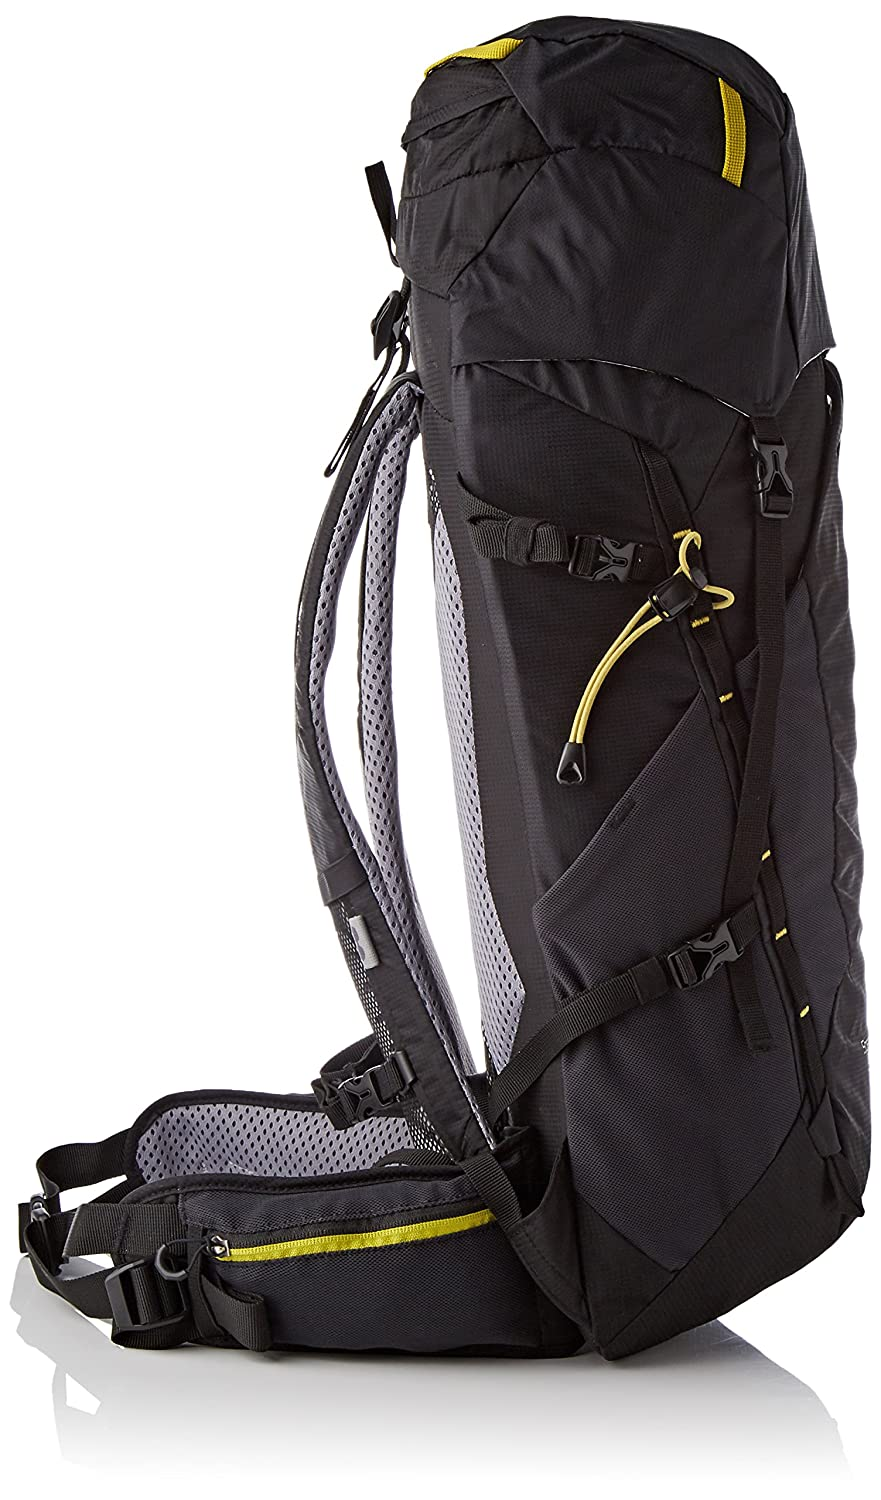 d723f2ab94 Deuter Speed Lite 32 Zaino Casual, 66 cm, Liters, Nero (Black): Amazon.it:  Scarpe e borse